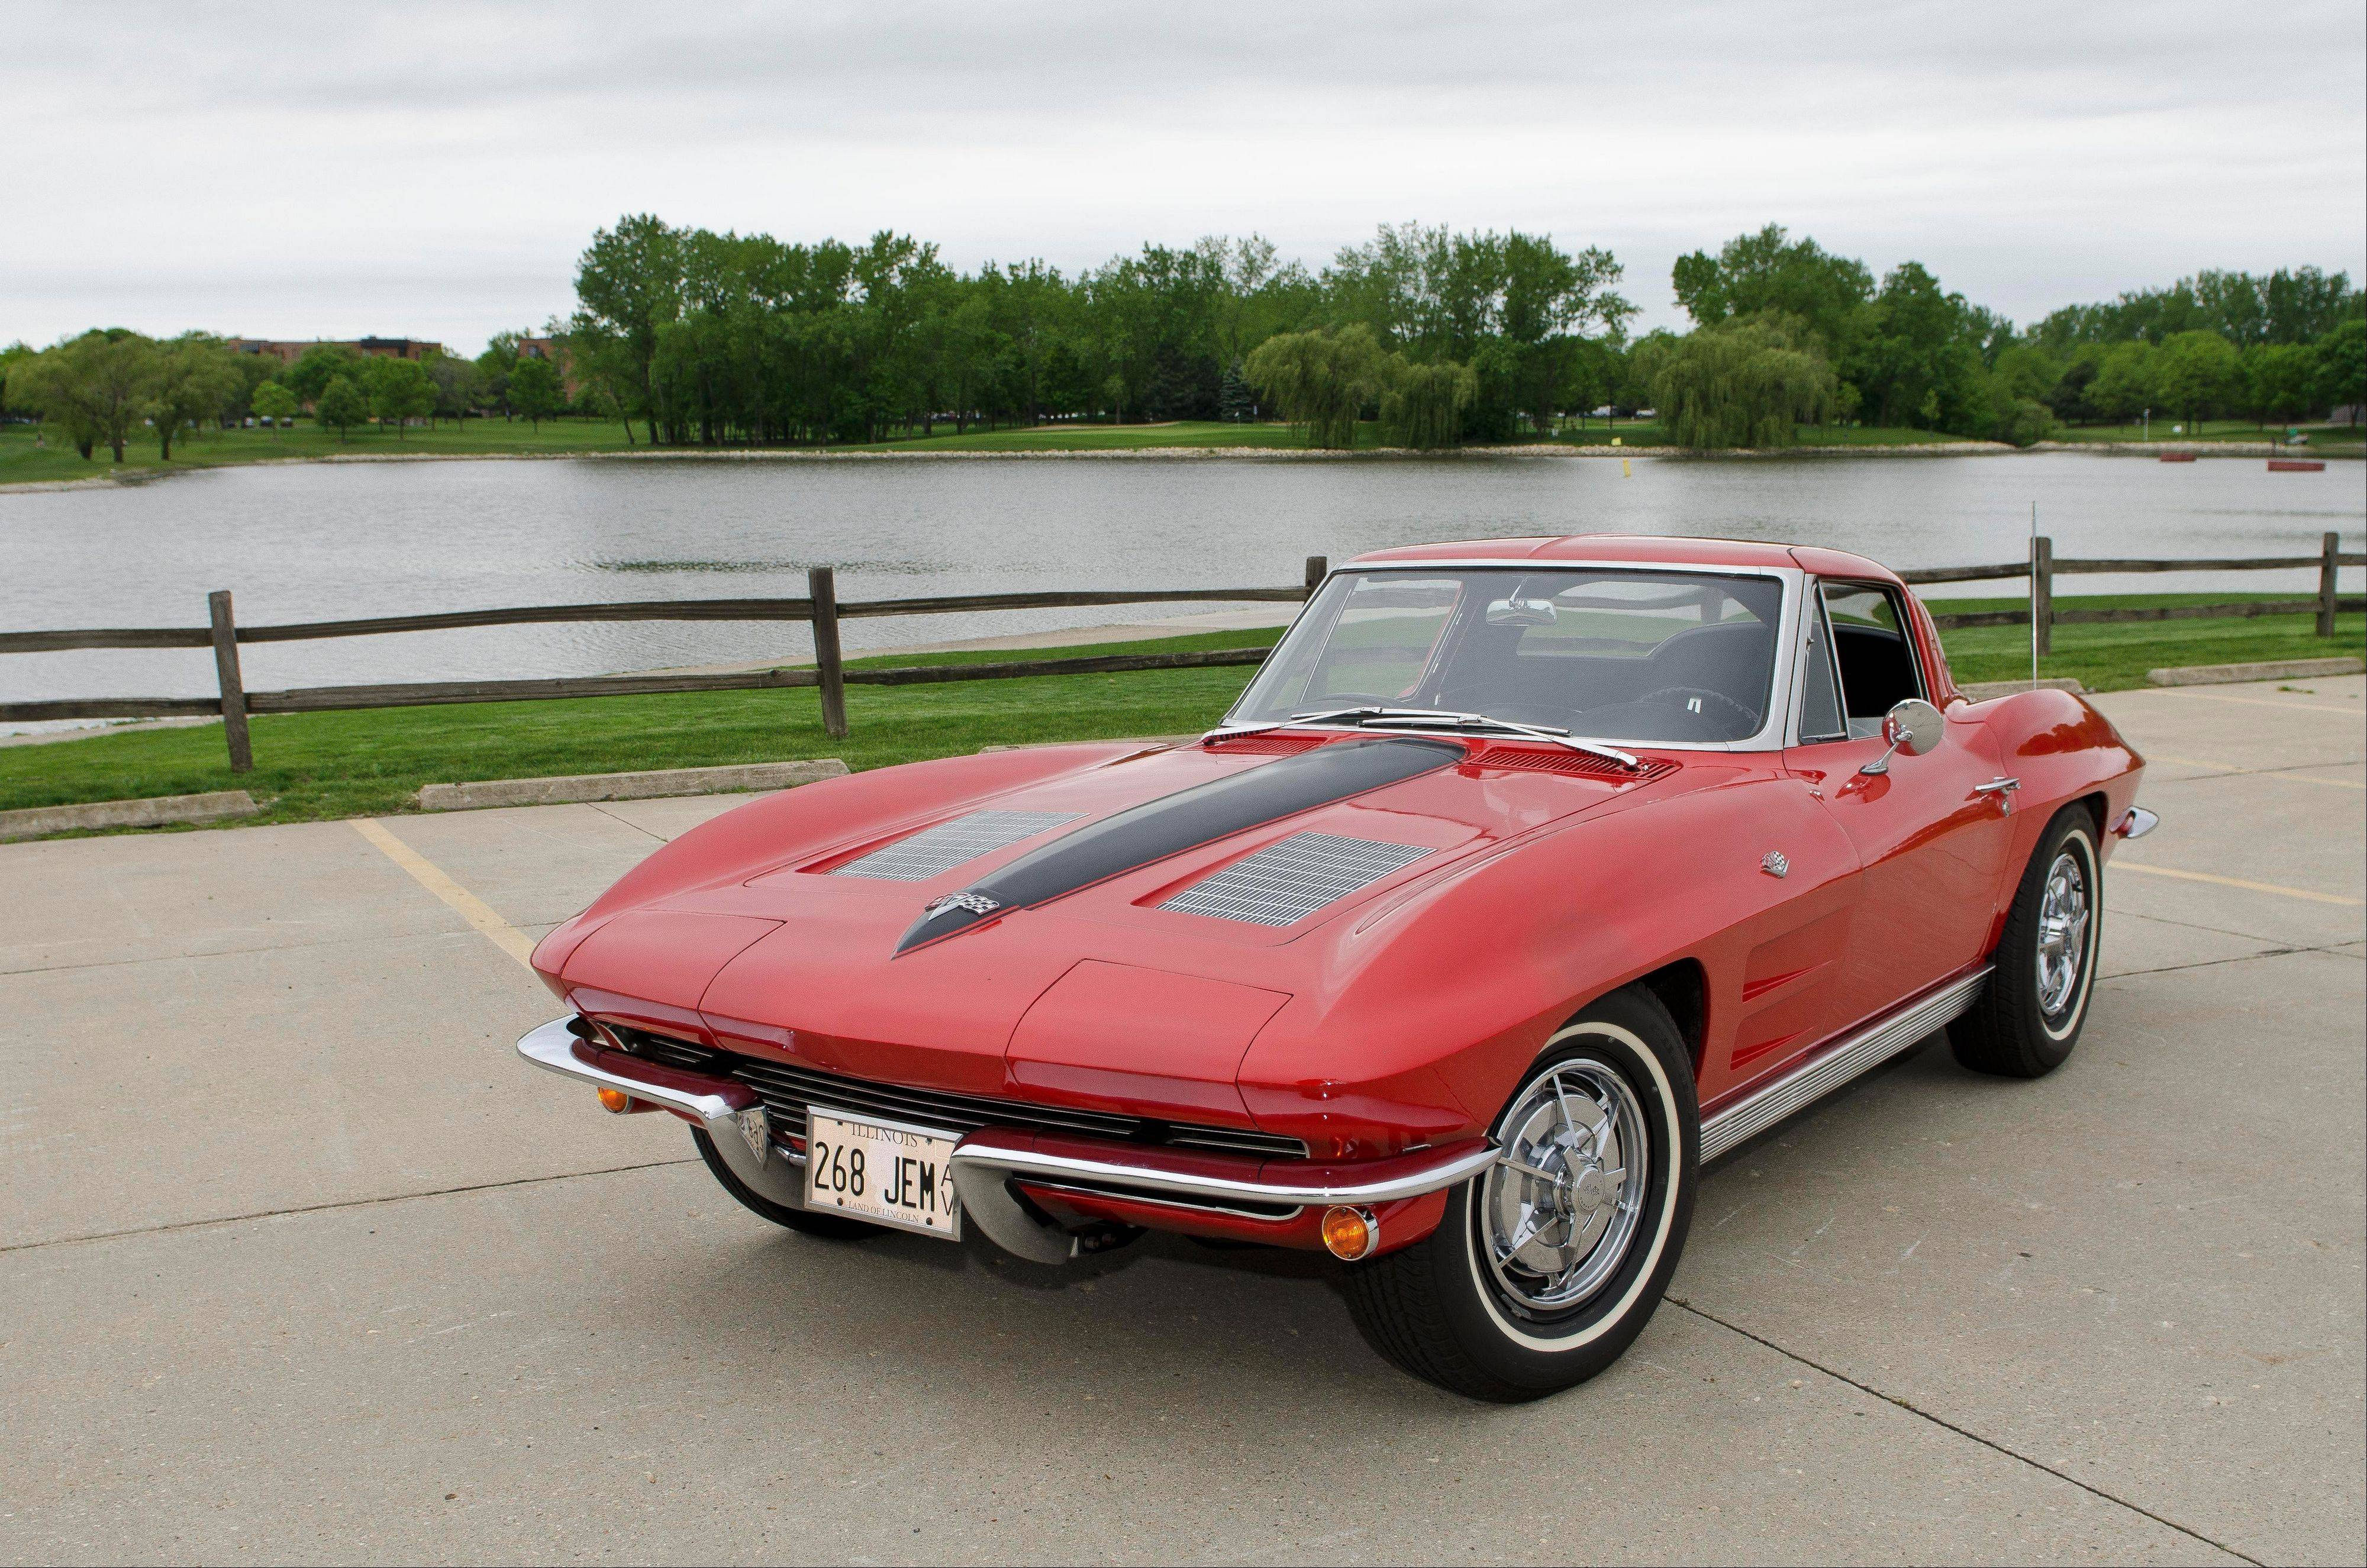 1963 Chevrolet Corvette, John Mrock, Arlington Heights